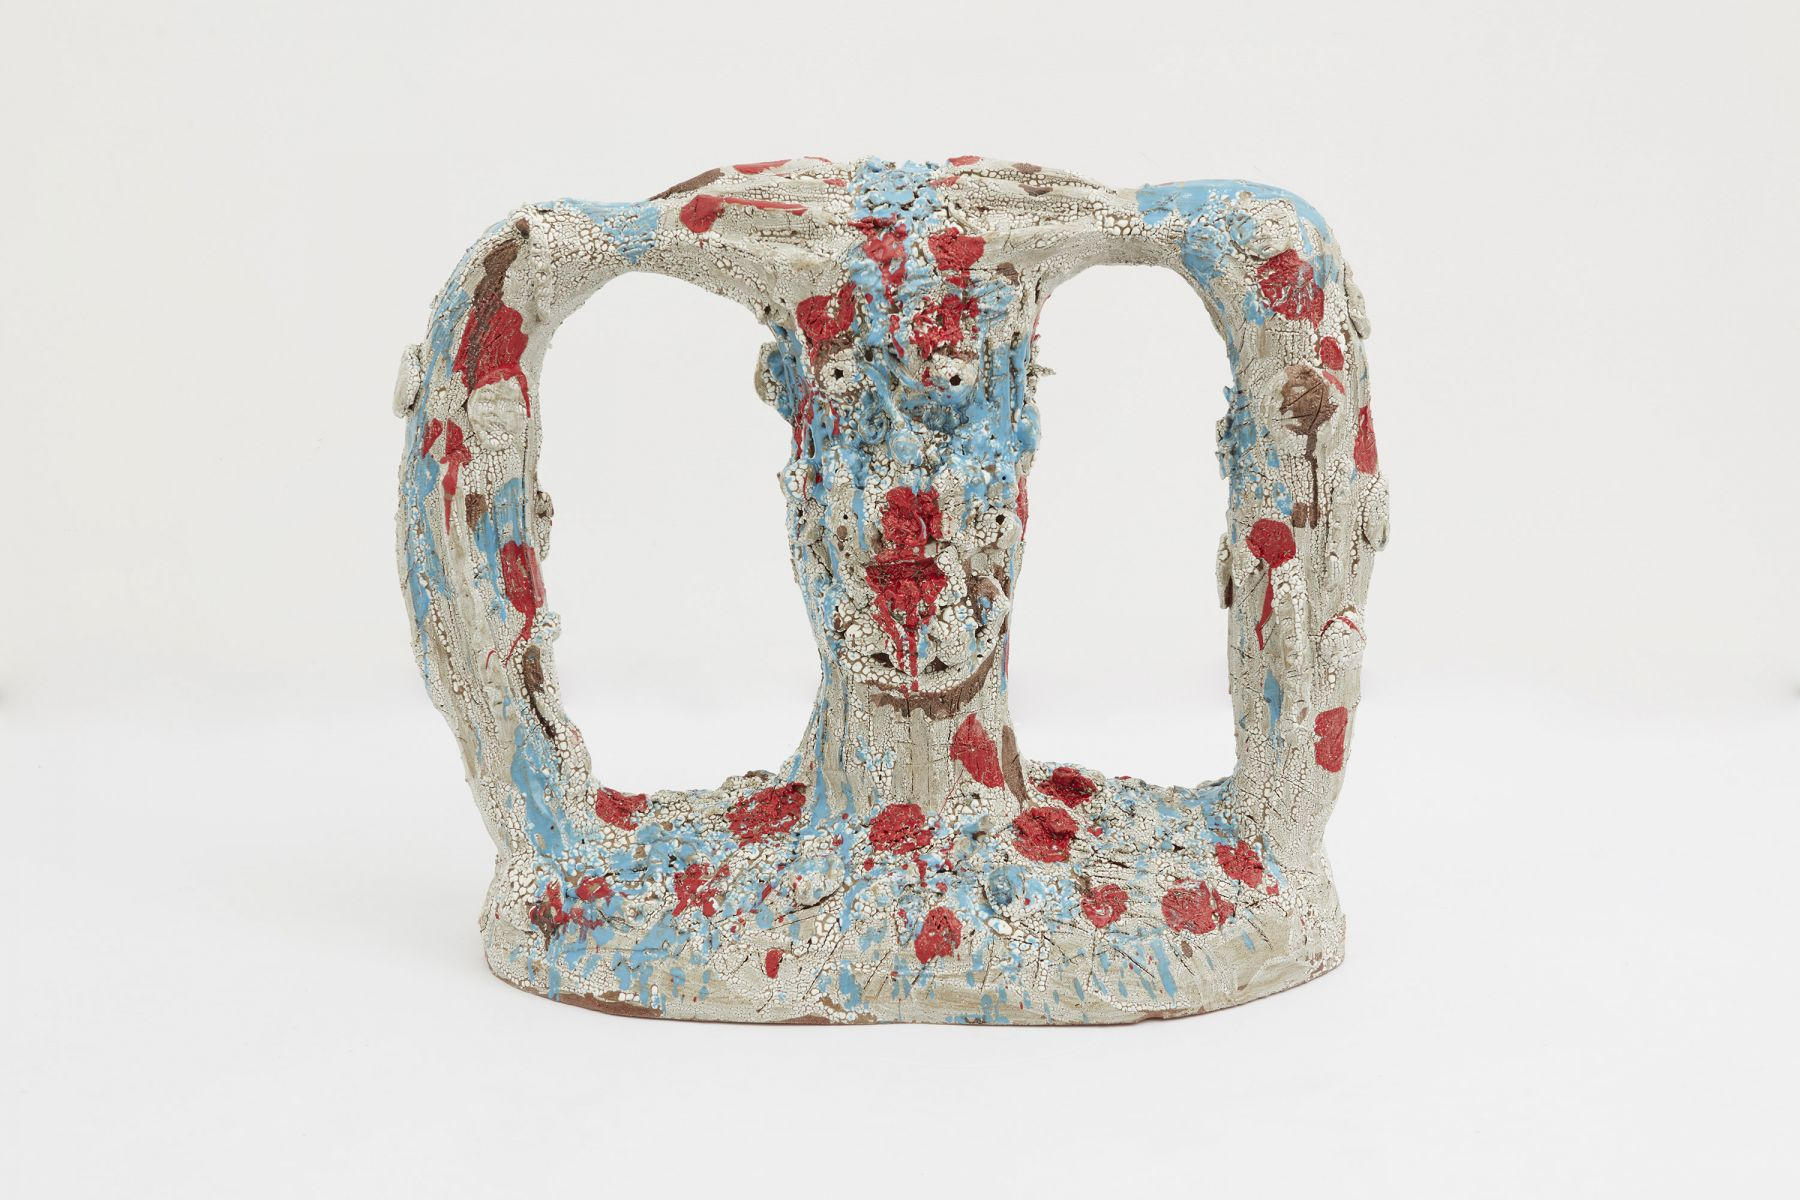 an abstract ceramic sculpture by william j. o'brien for sale in a chelsea art gallery